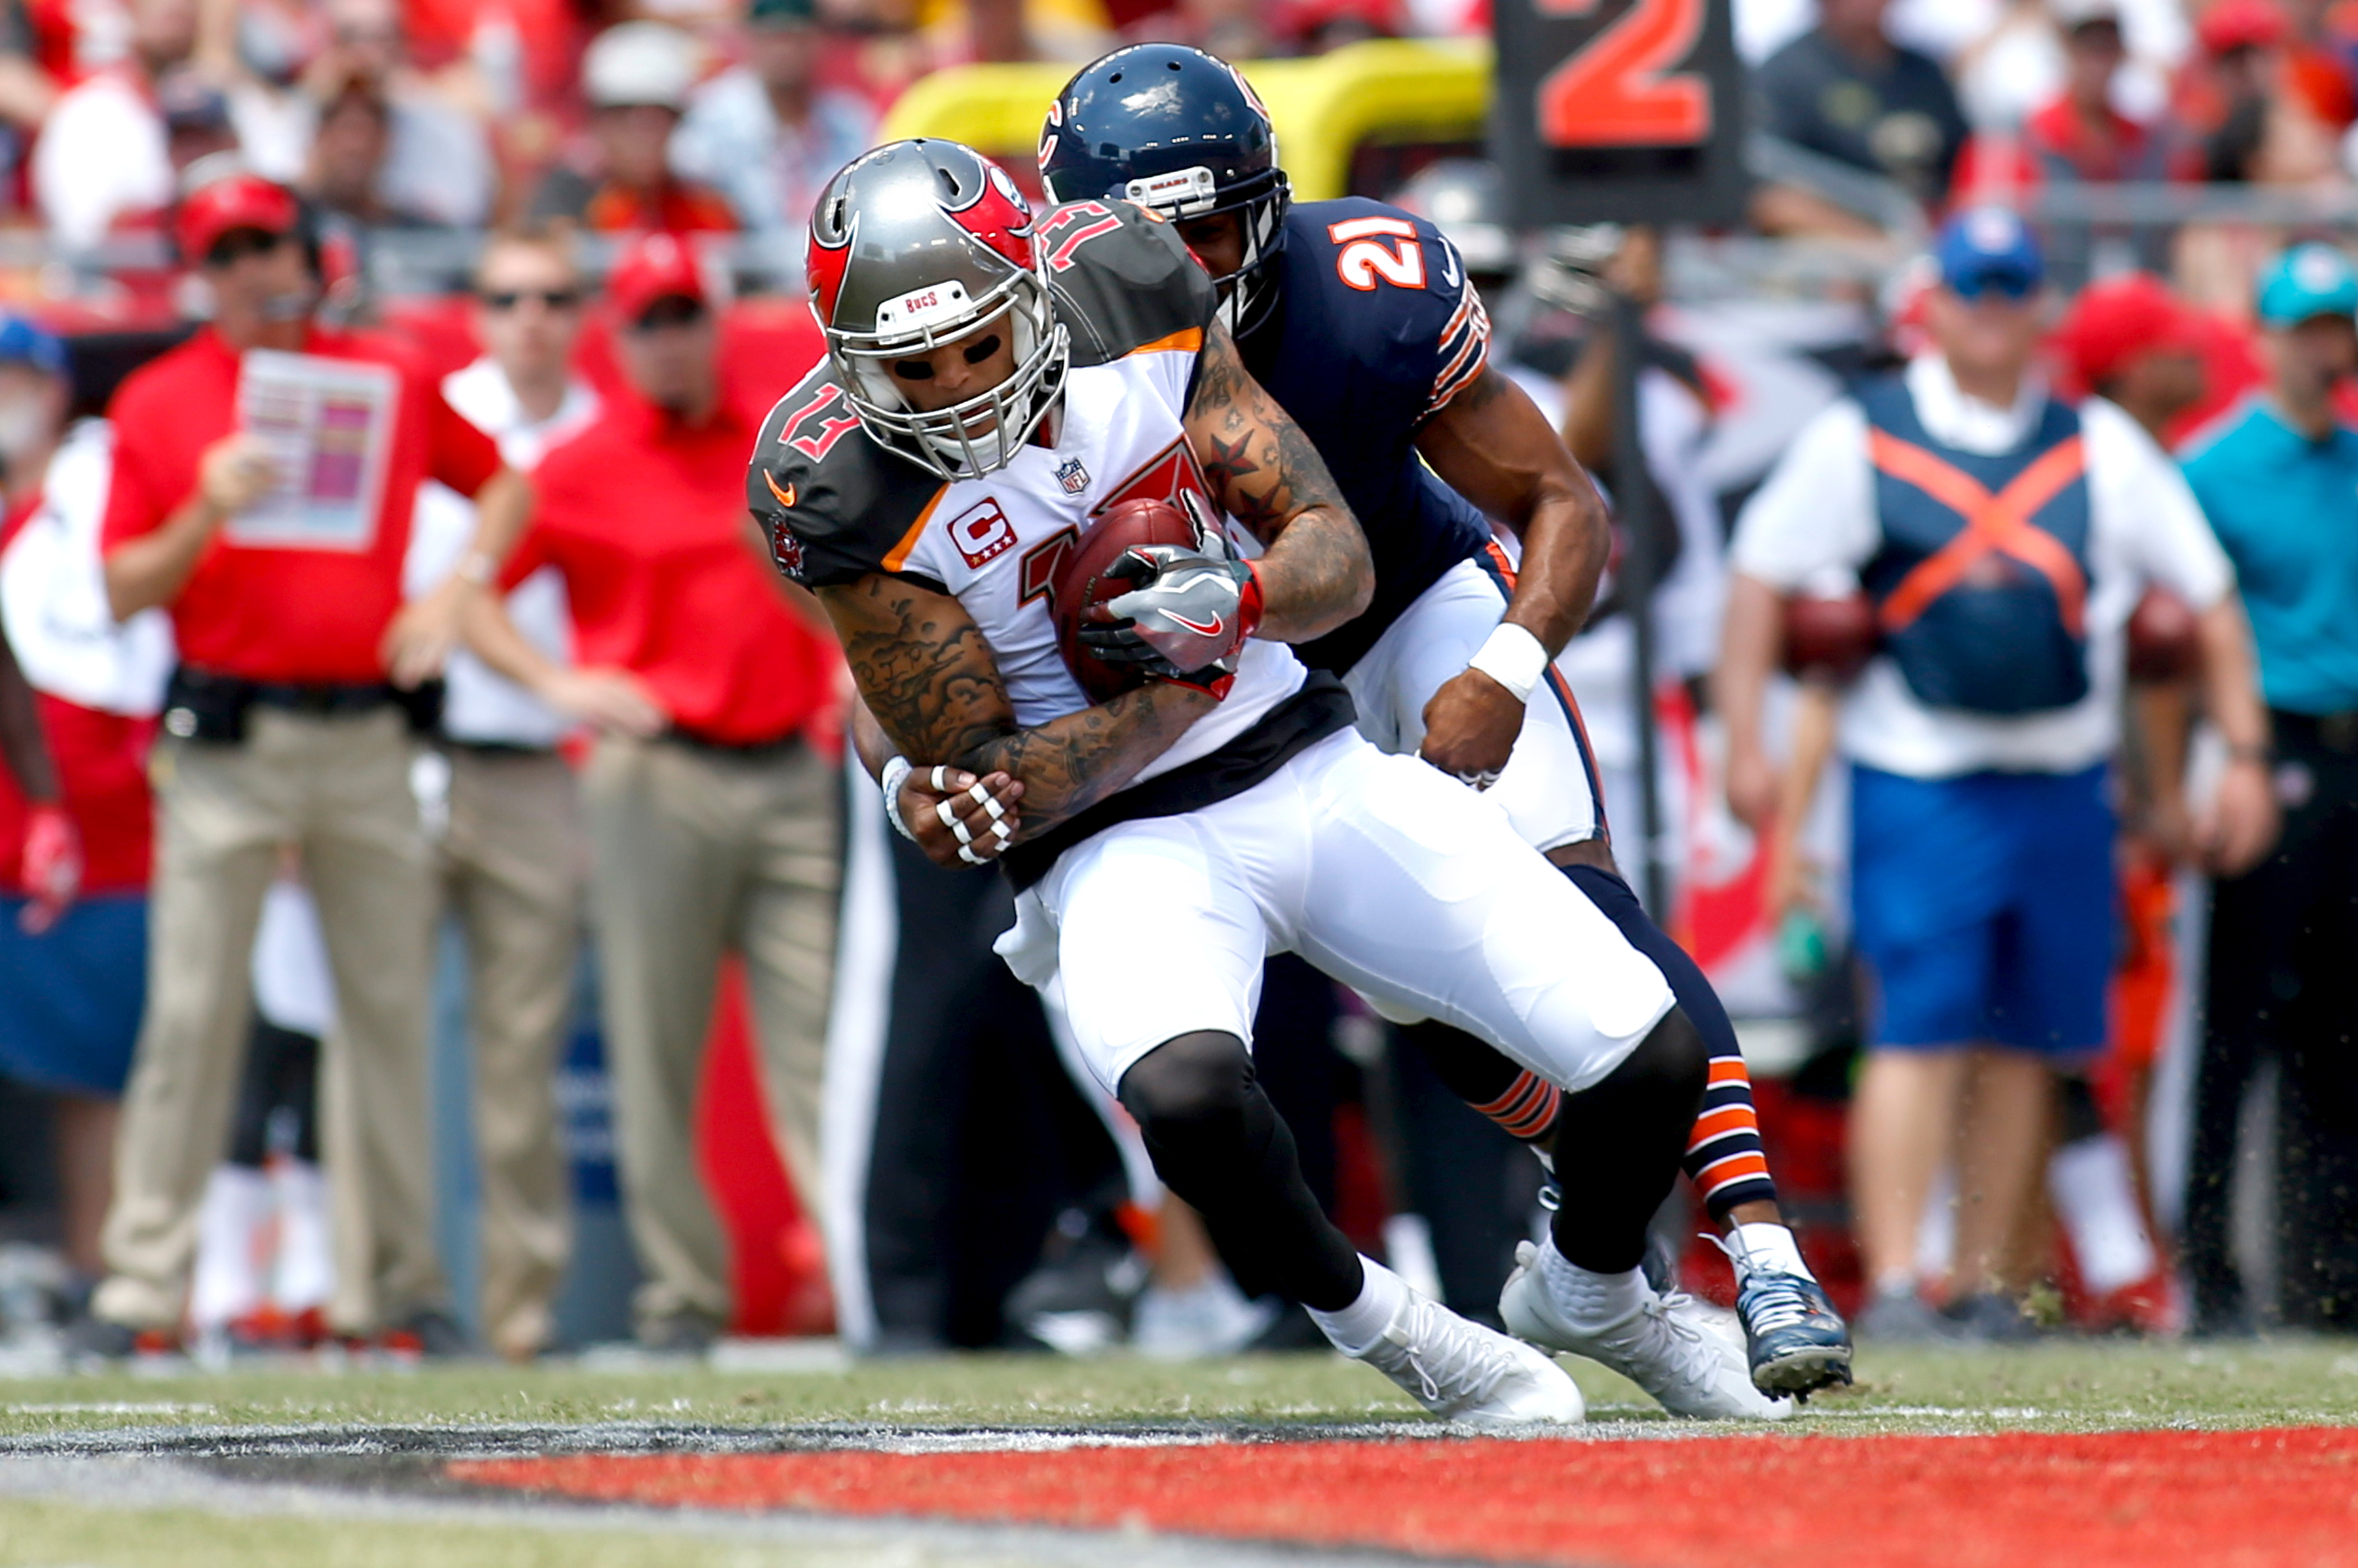 Bucs force 4 turnovers in rout of Bears